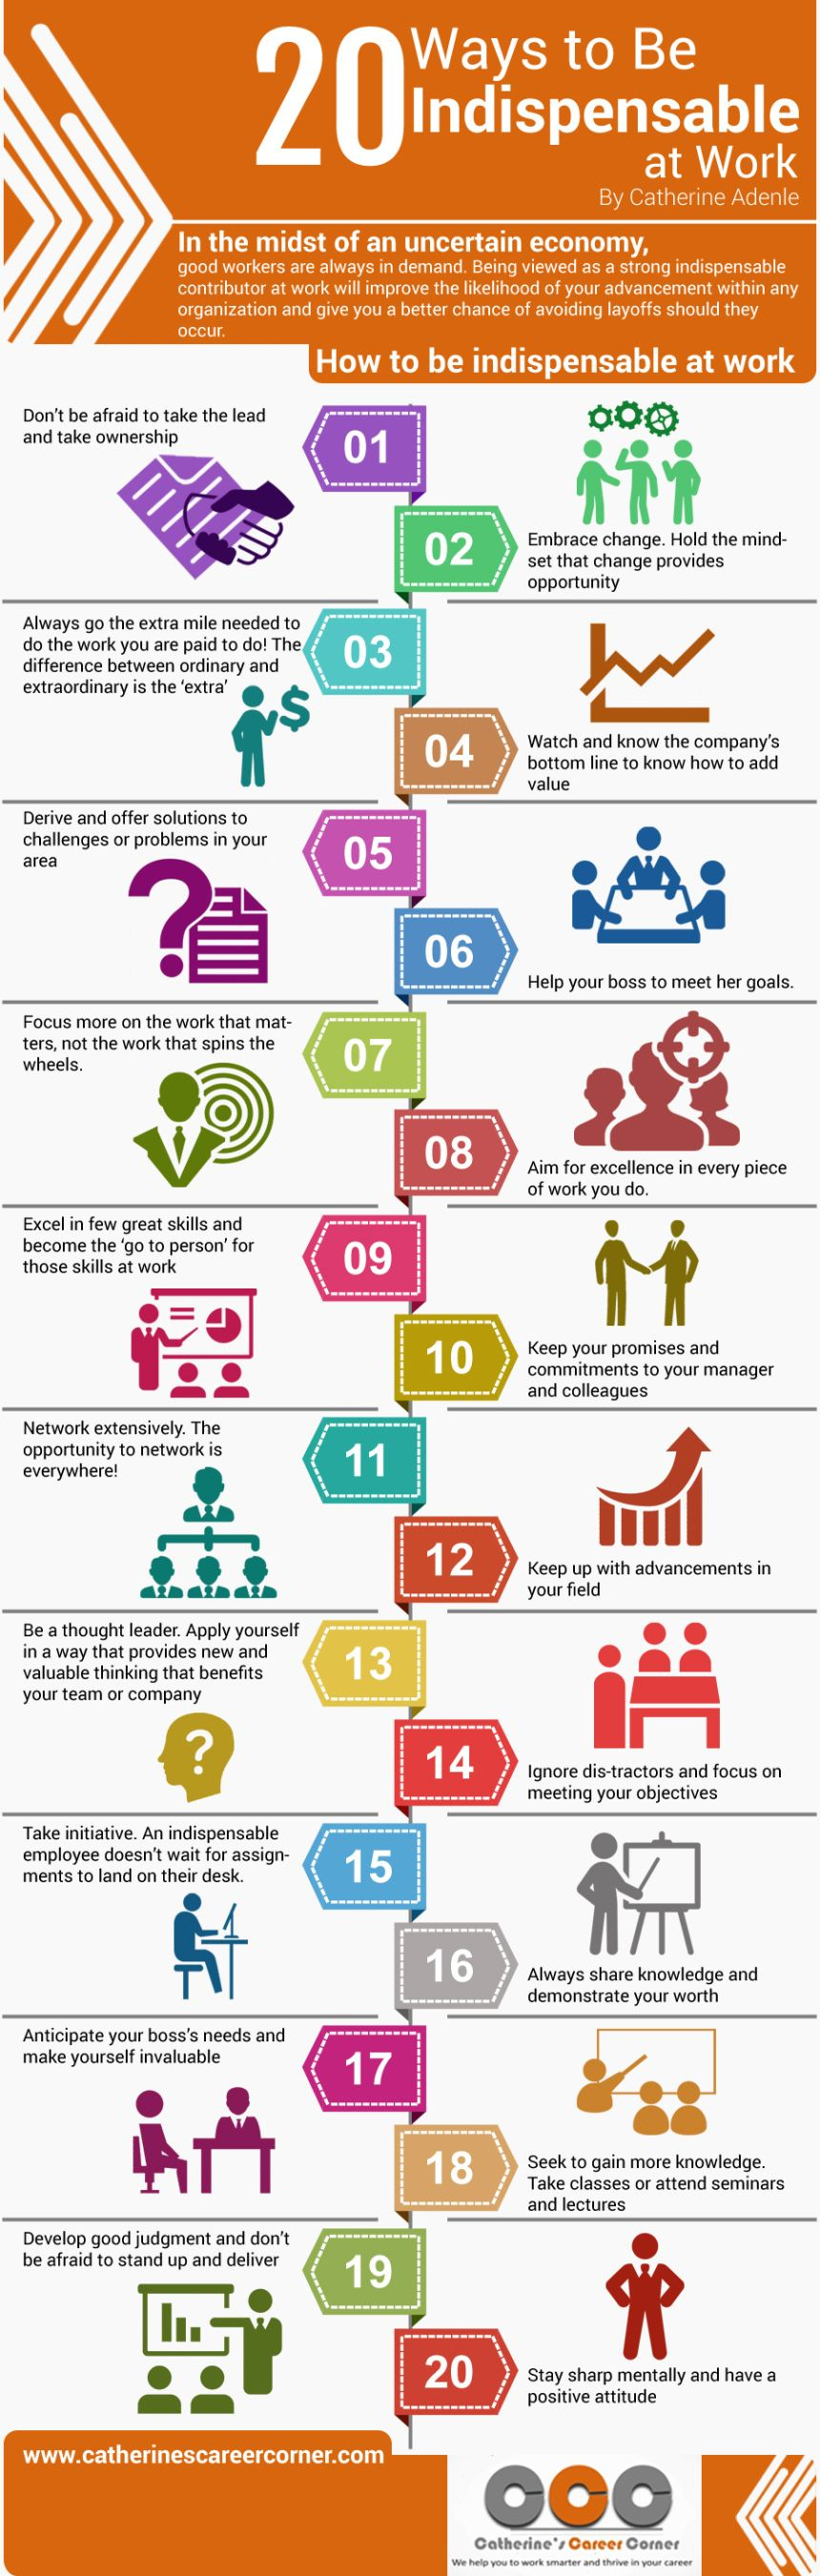 20 Ways to Be Indispensable at Work